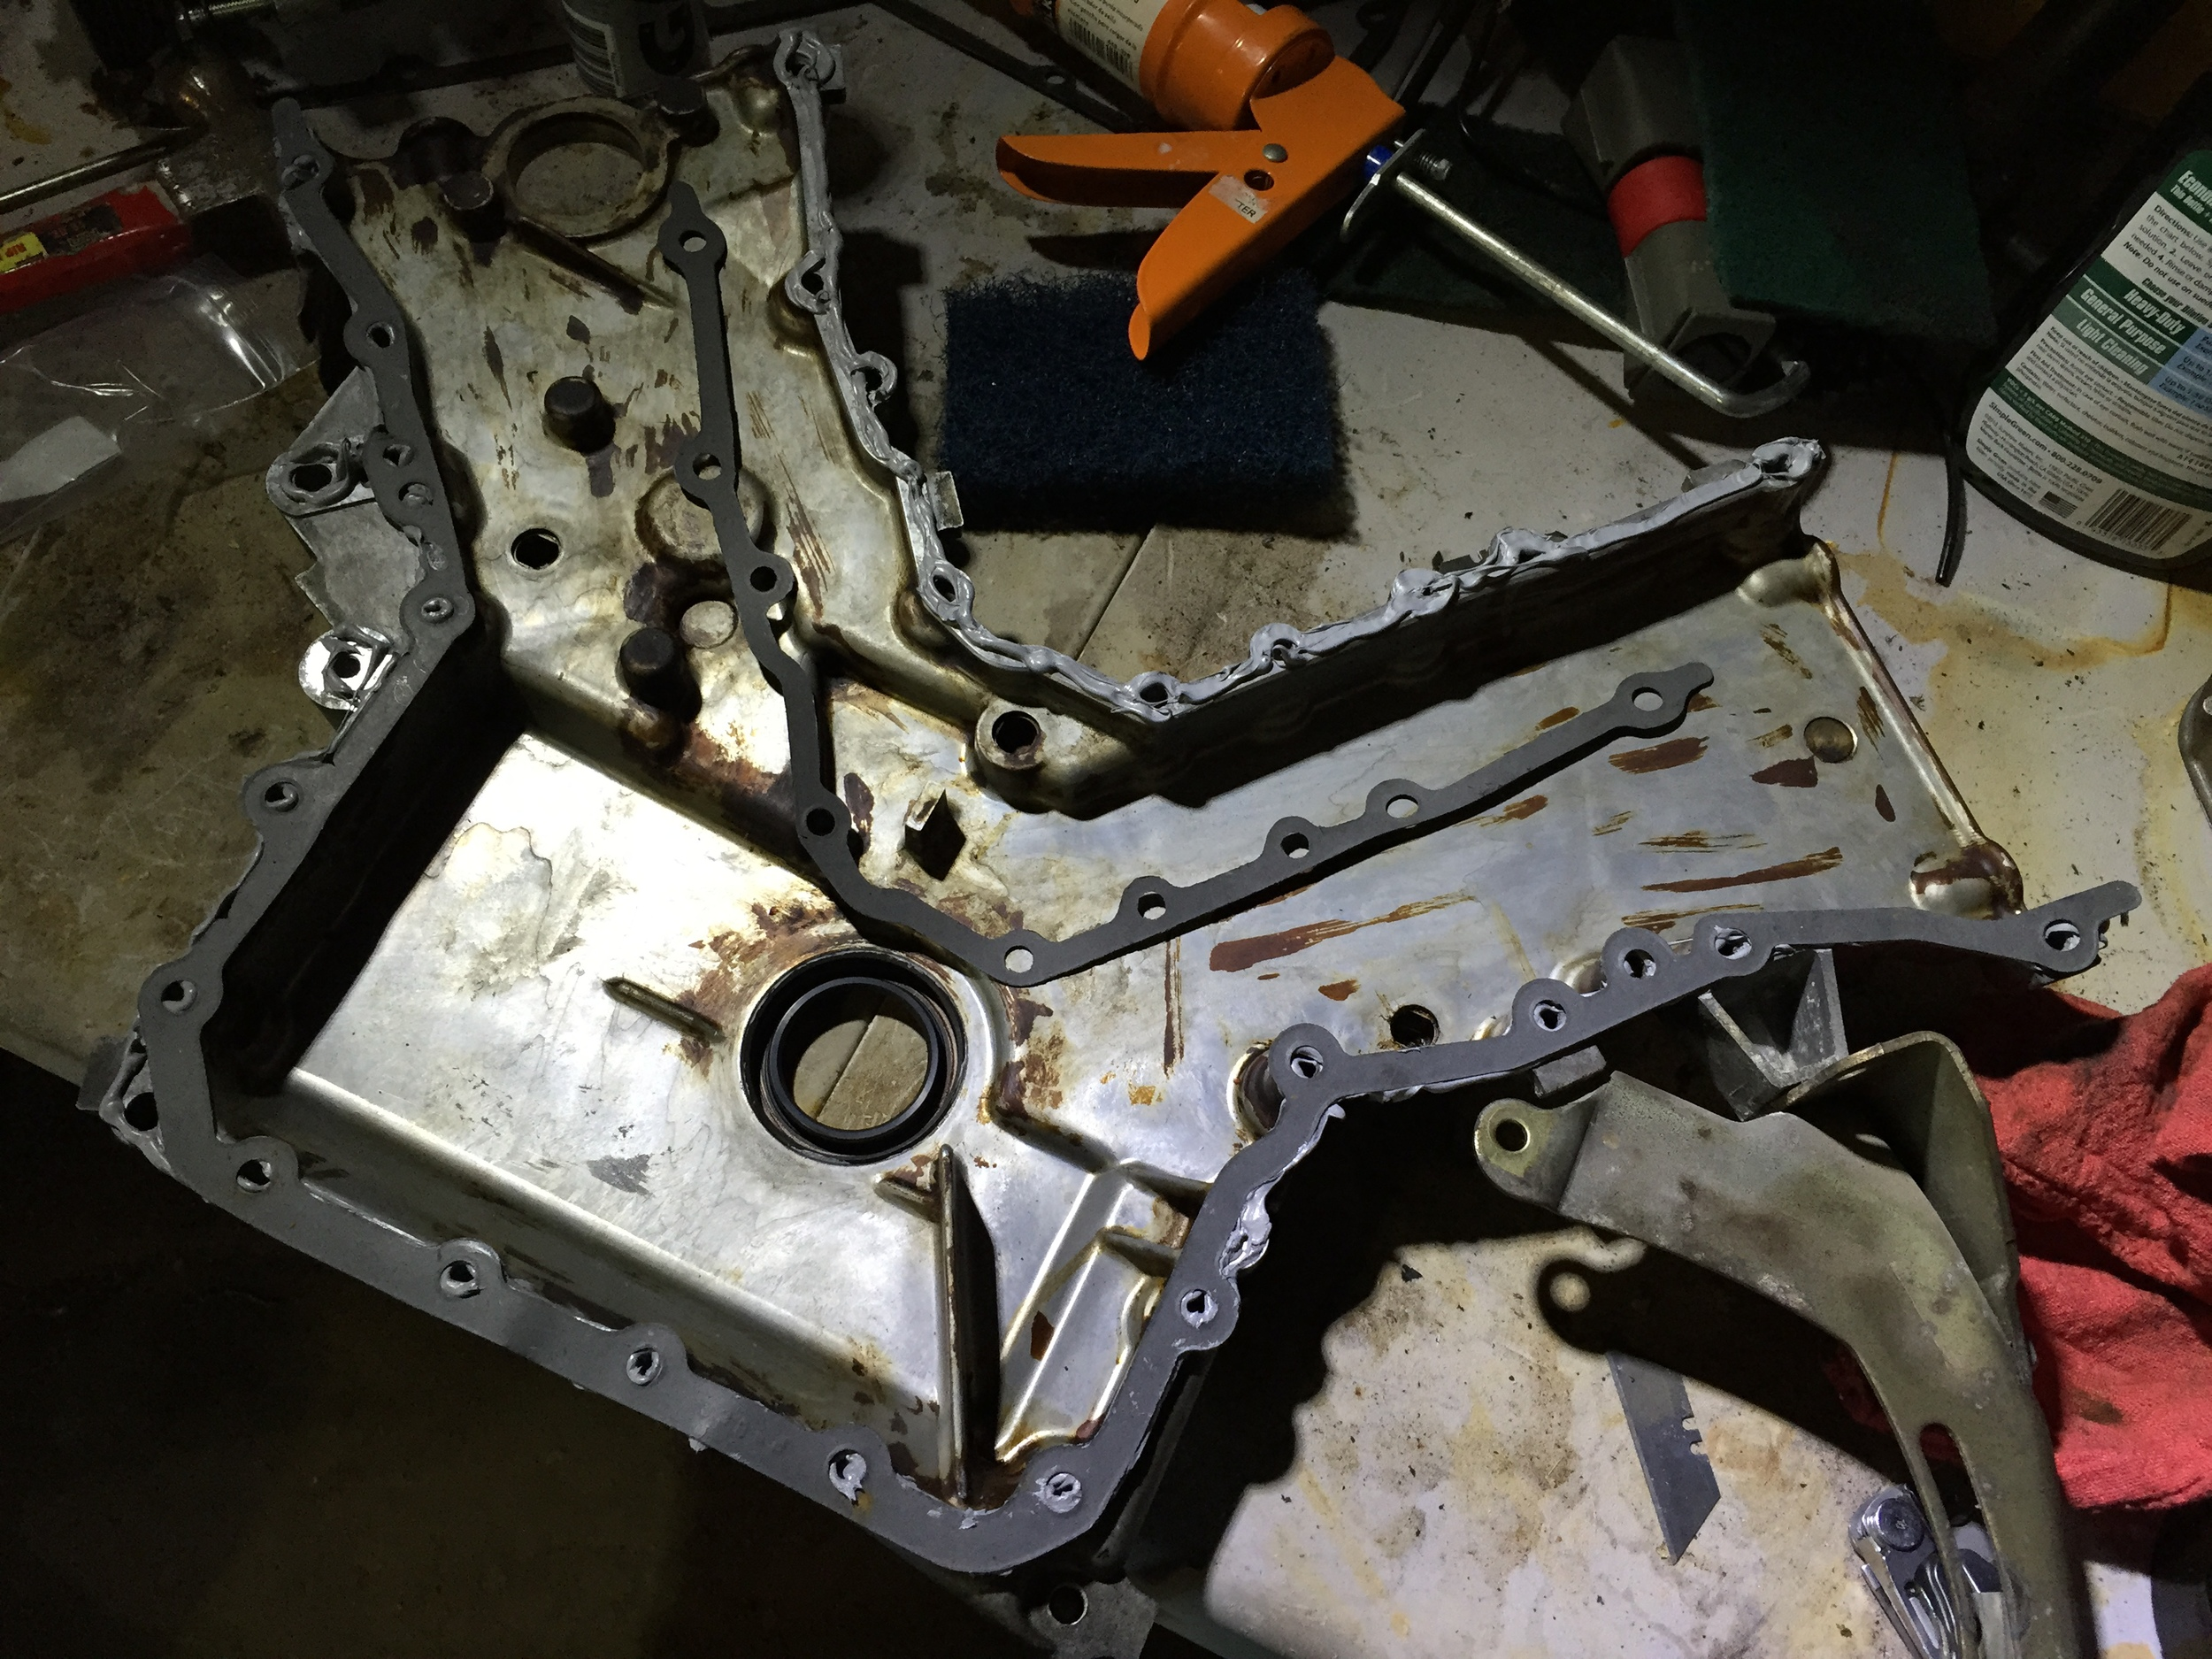 Liberal amounts of Right Stuff applied to install the upper timing cover gasket. The lower gasket is already mounted on the cover.